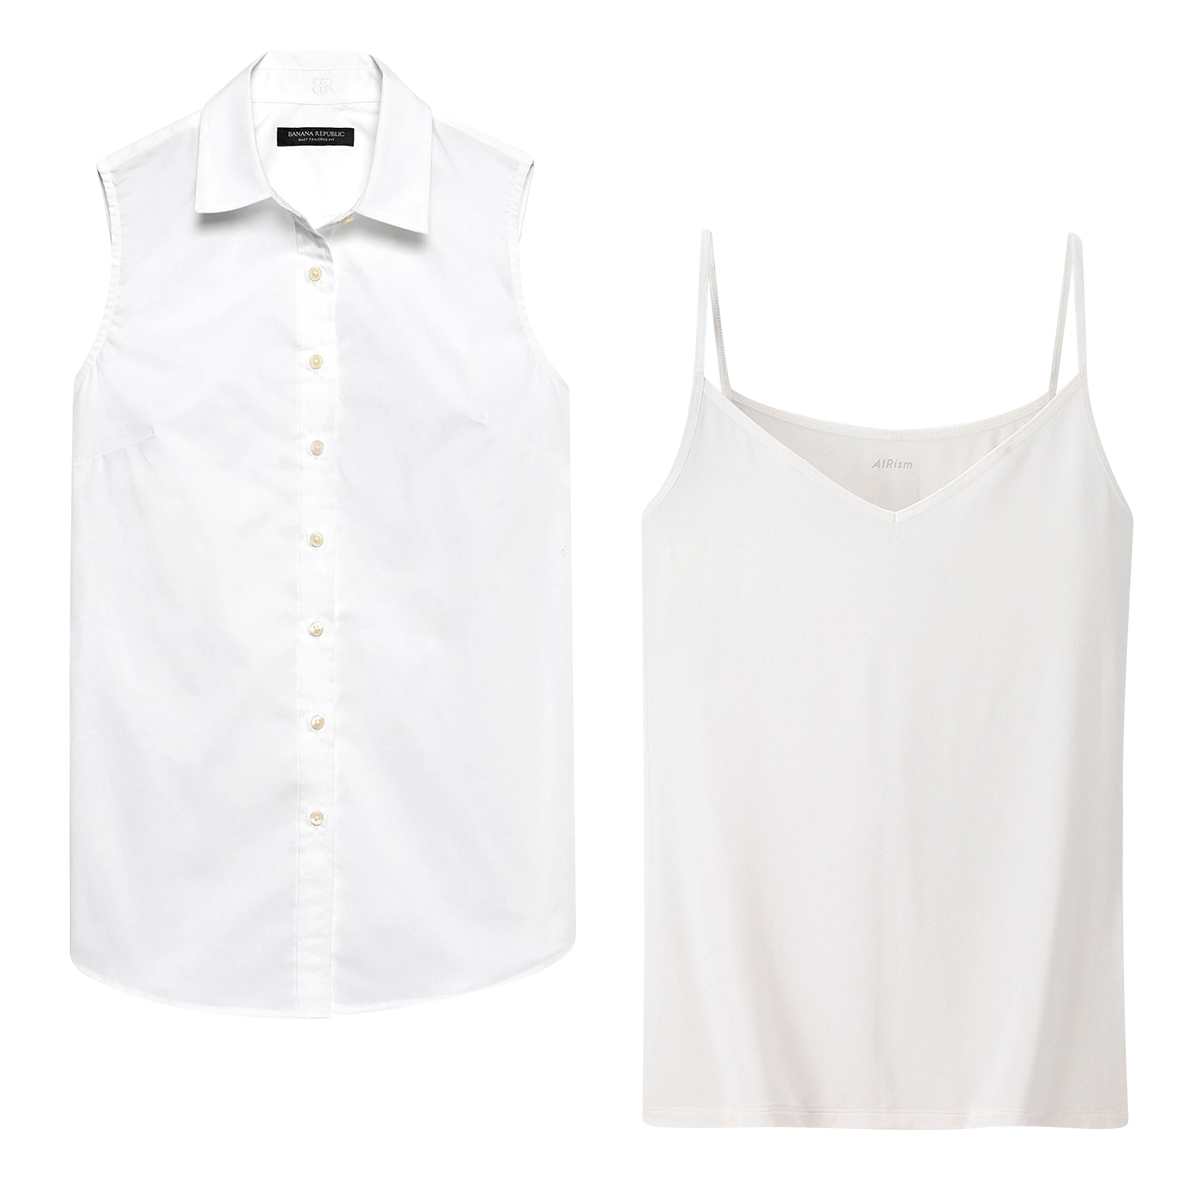 The Problem: A Little White Shirt